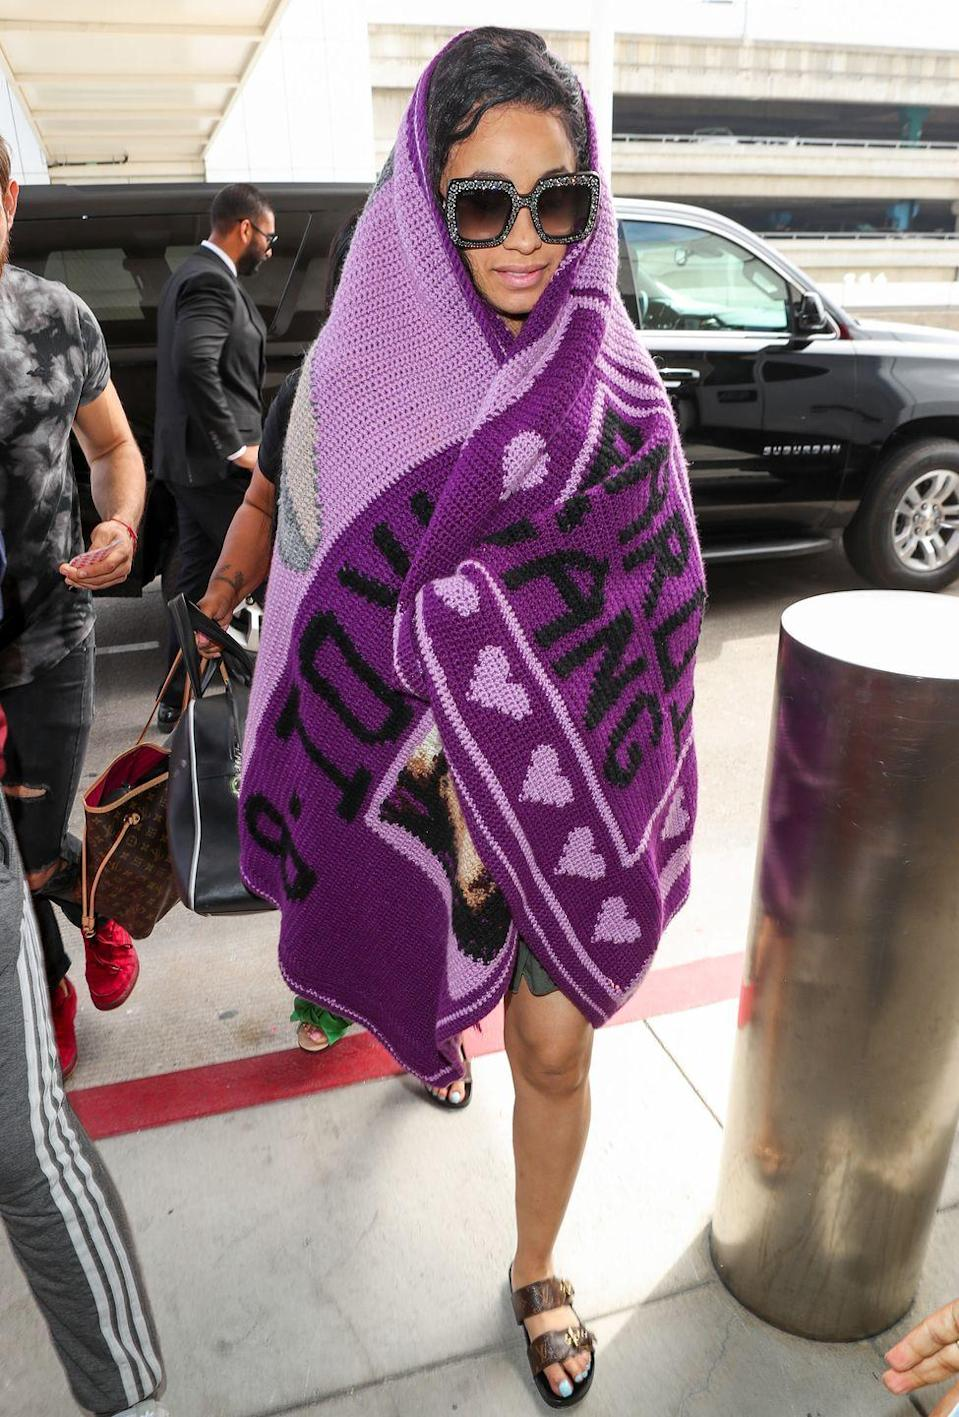 <p><strong>Cardi B, 2018: </strong>The singer showed up to the airport wrapped in a giant purple throw blanket and sported sparkly oversized frames. </p>